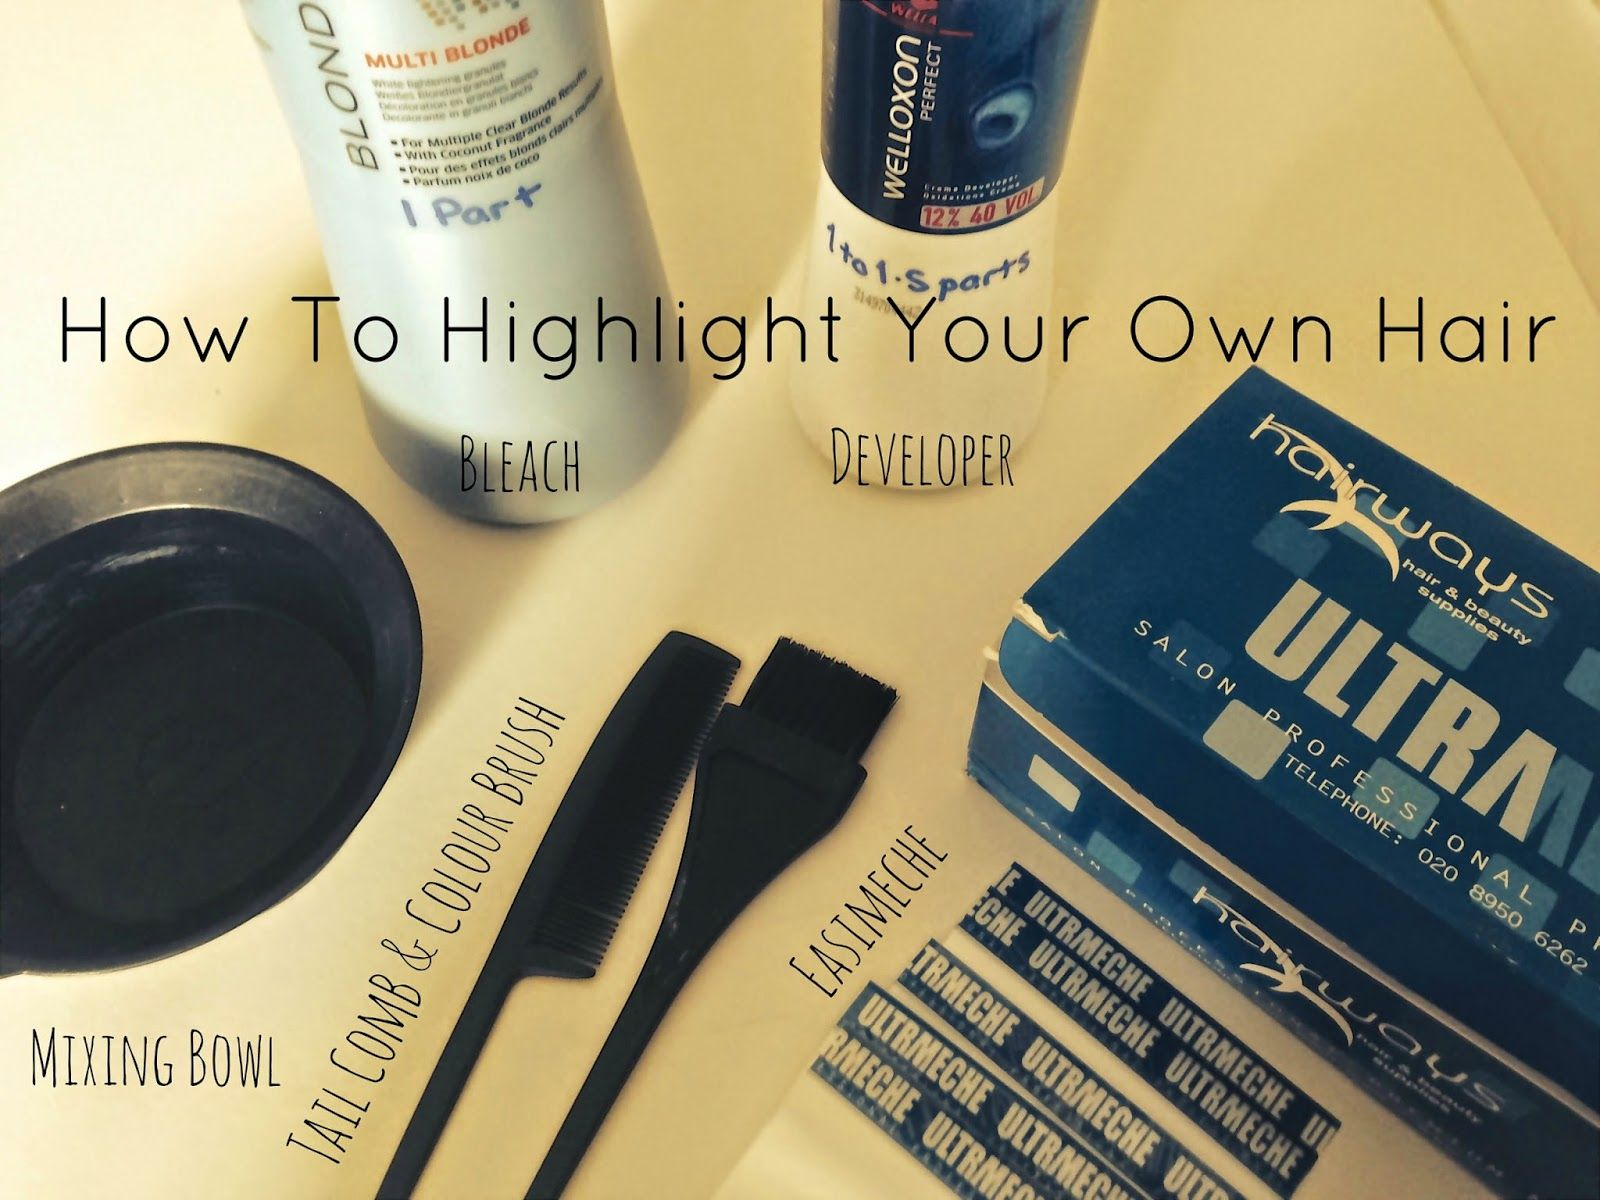 How To Highlightyour Own Hair Home Highlighting Sherrys Favorite